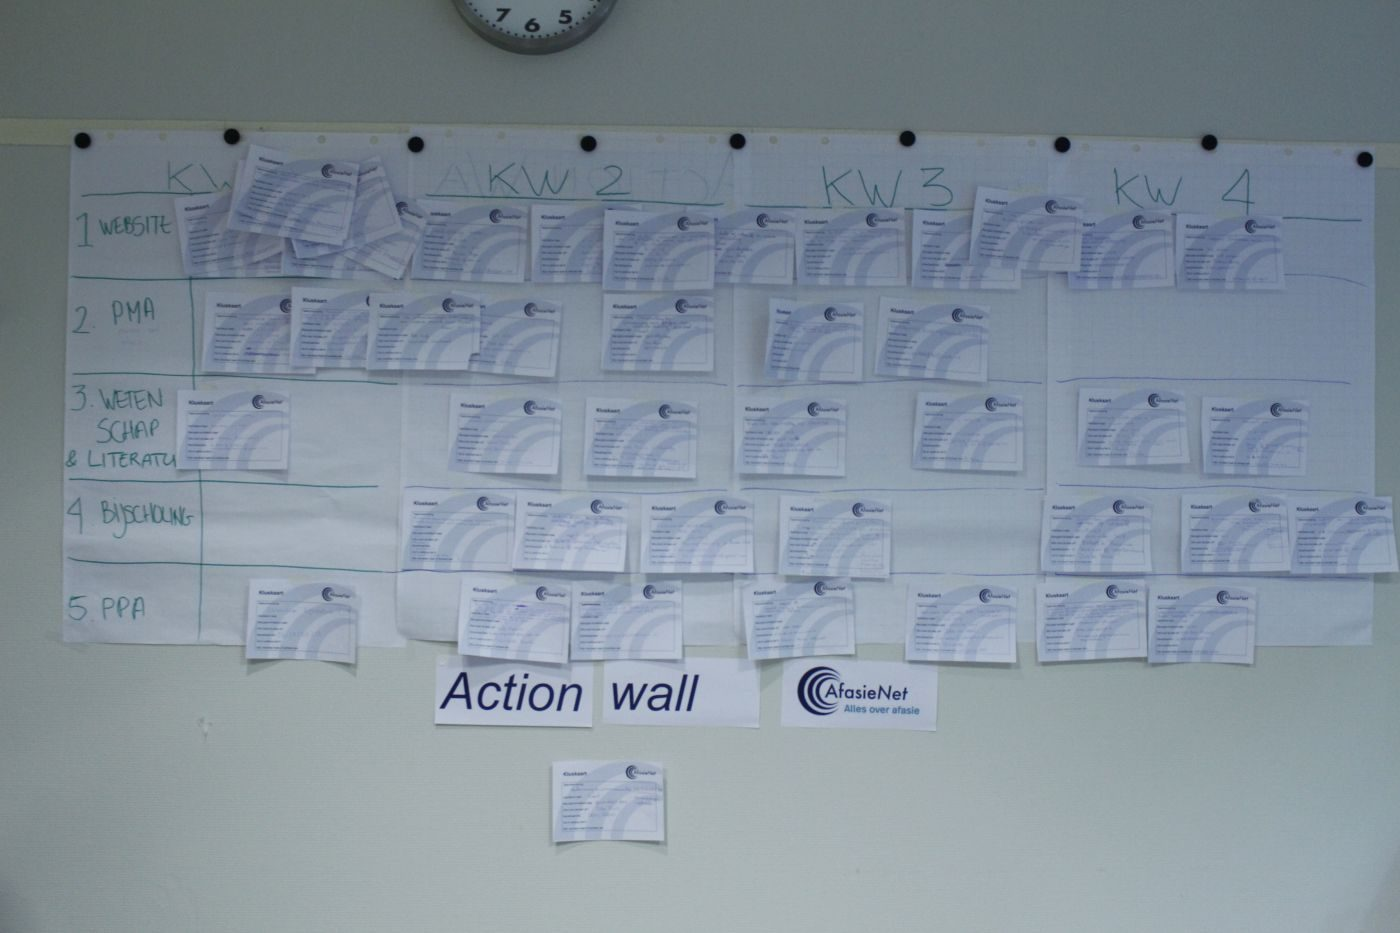 Action wall